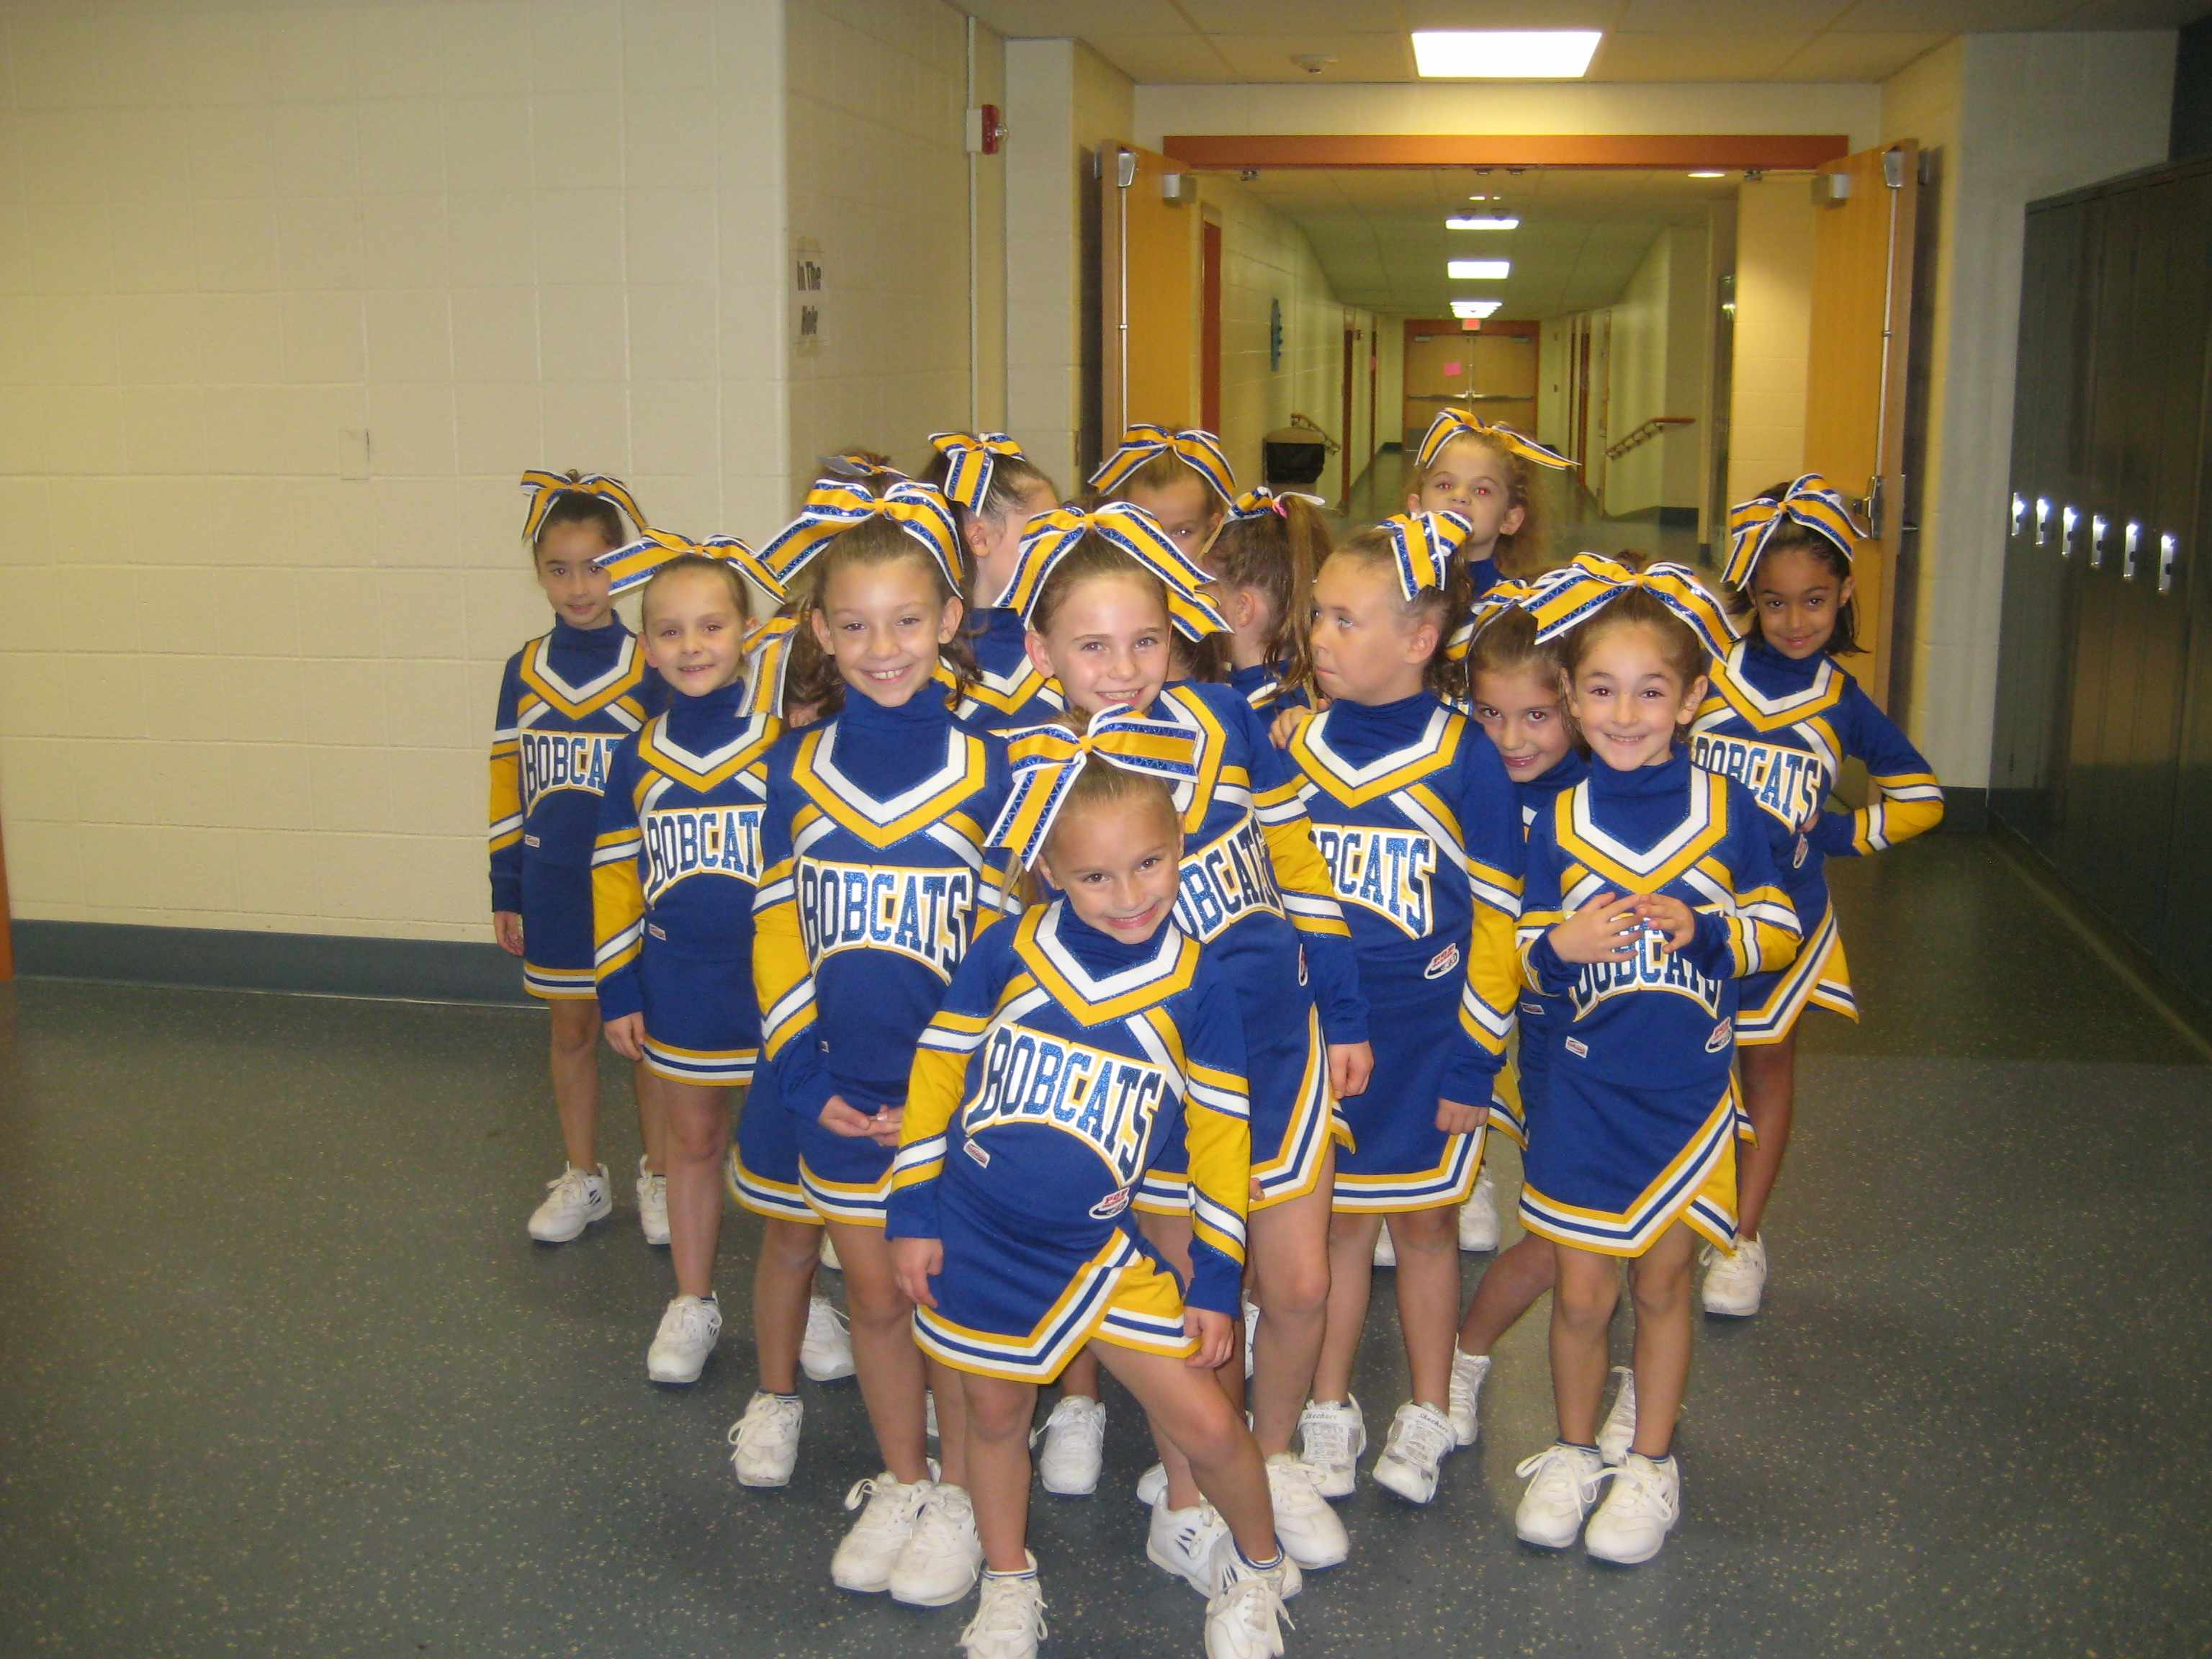 2011 Mitey Mite Cheerleaders 3